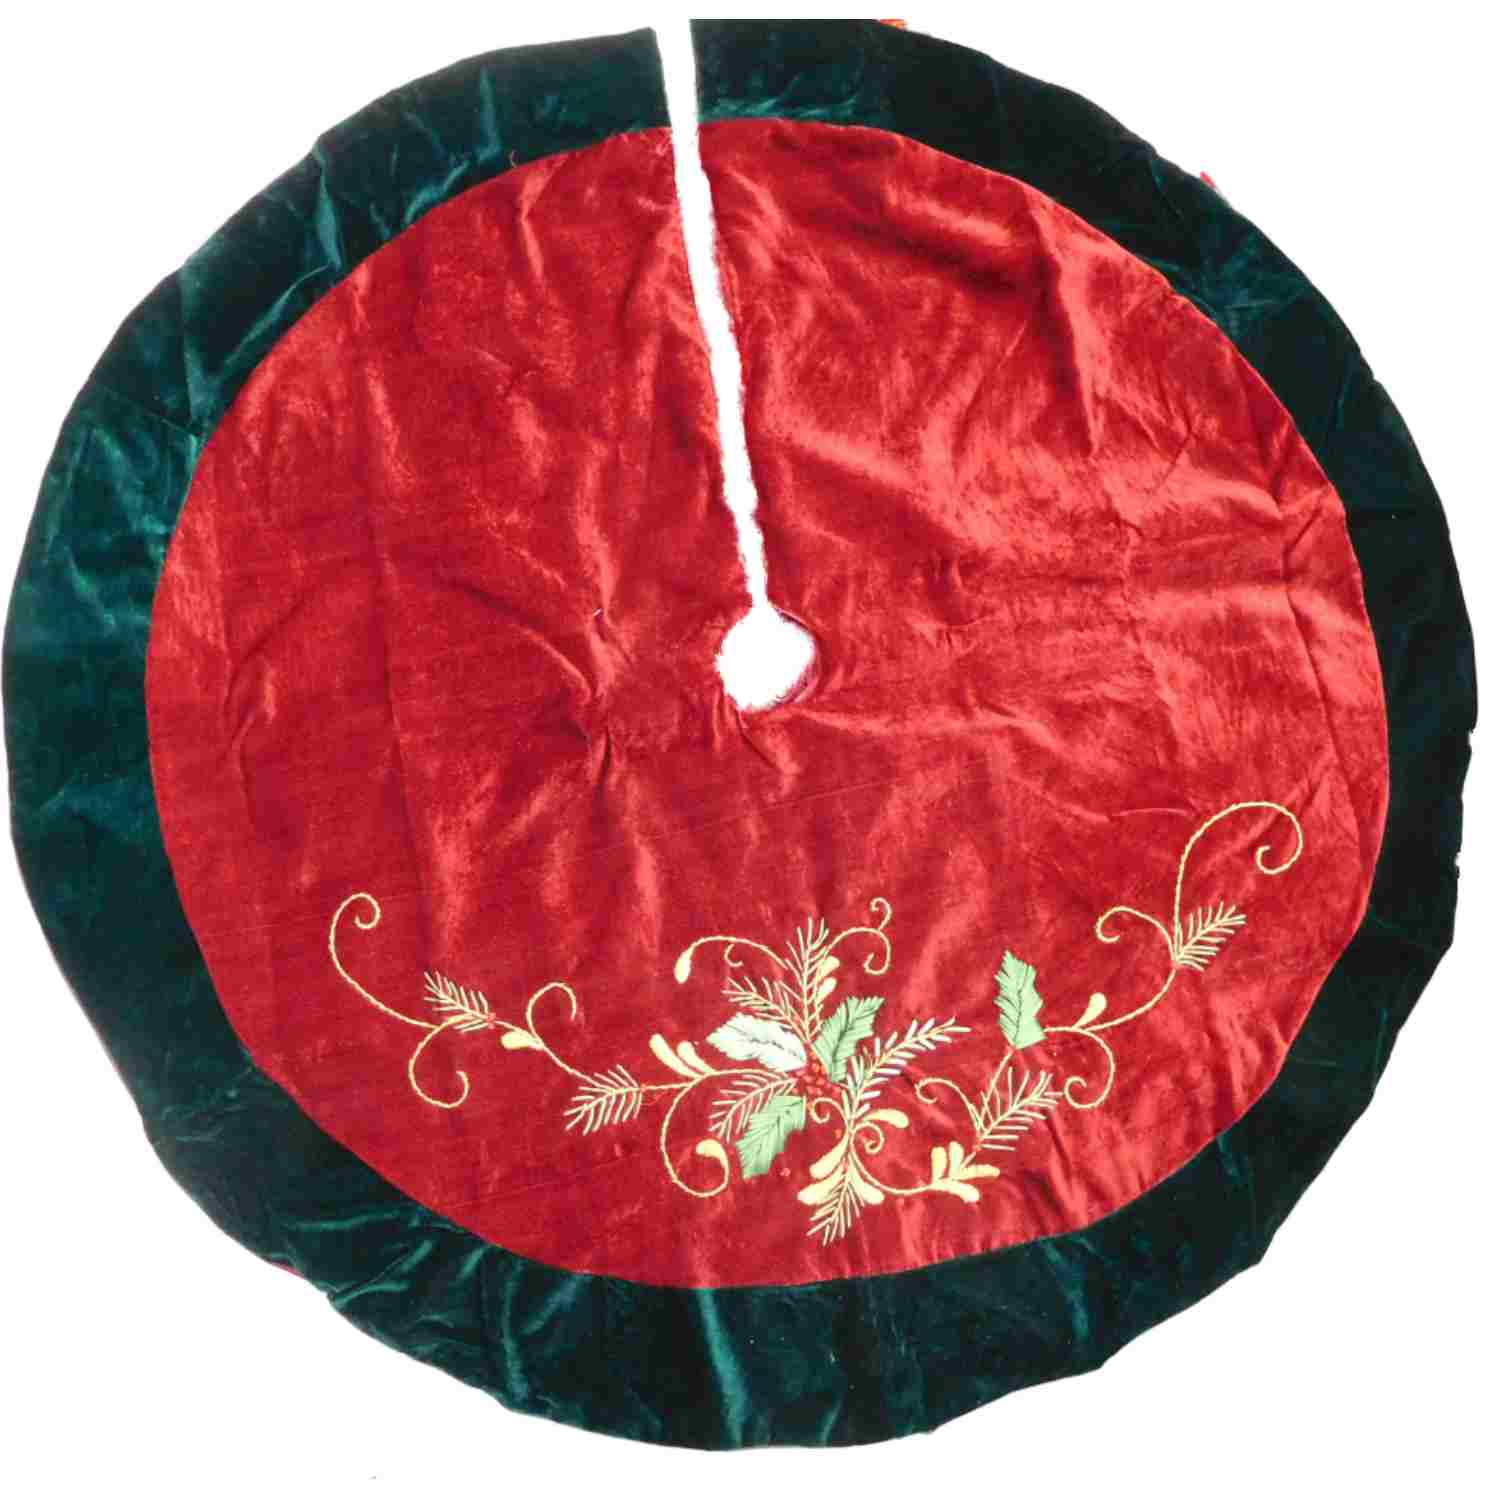 Red & Green Christmas Tree Skirt With Embroidered Holly With Berries & Leaves